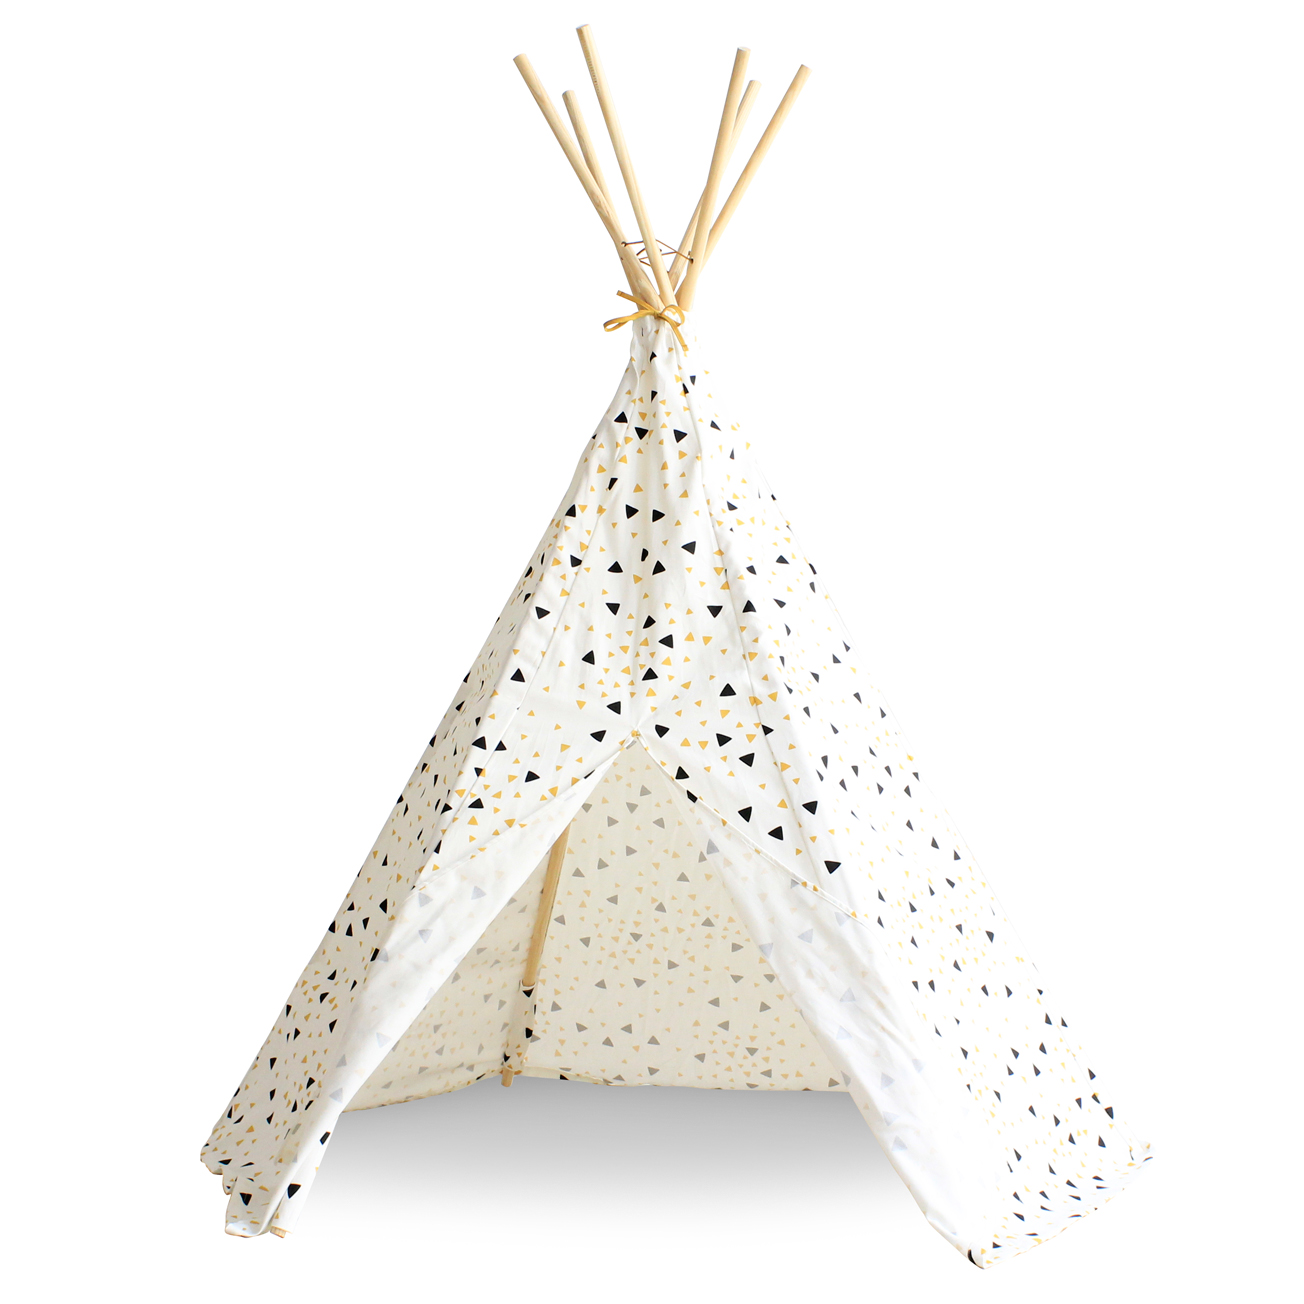 tipi arizona eclairs noir jaune nobodinoz pour chambre enfant les enfants du design. Black Bedroom Furniture Sets. Home Design Ideas